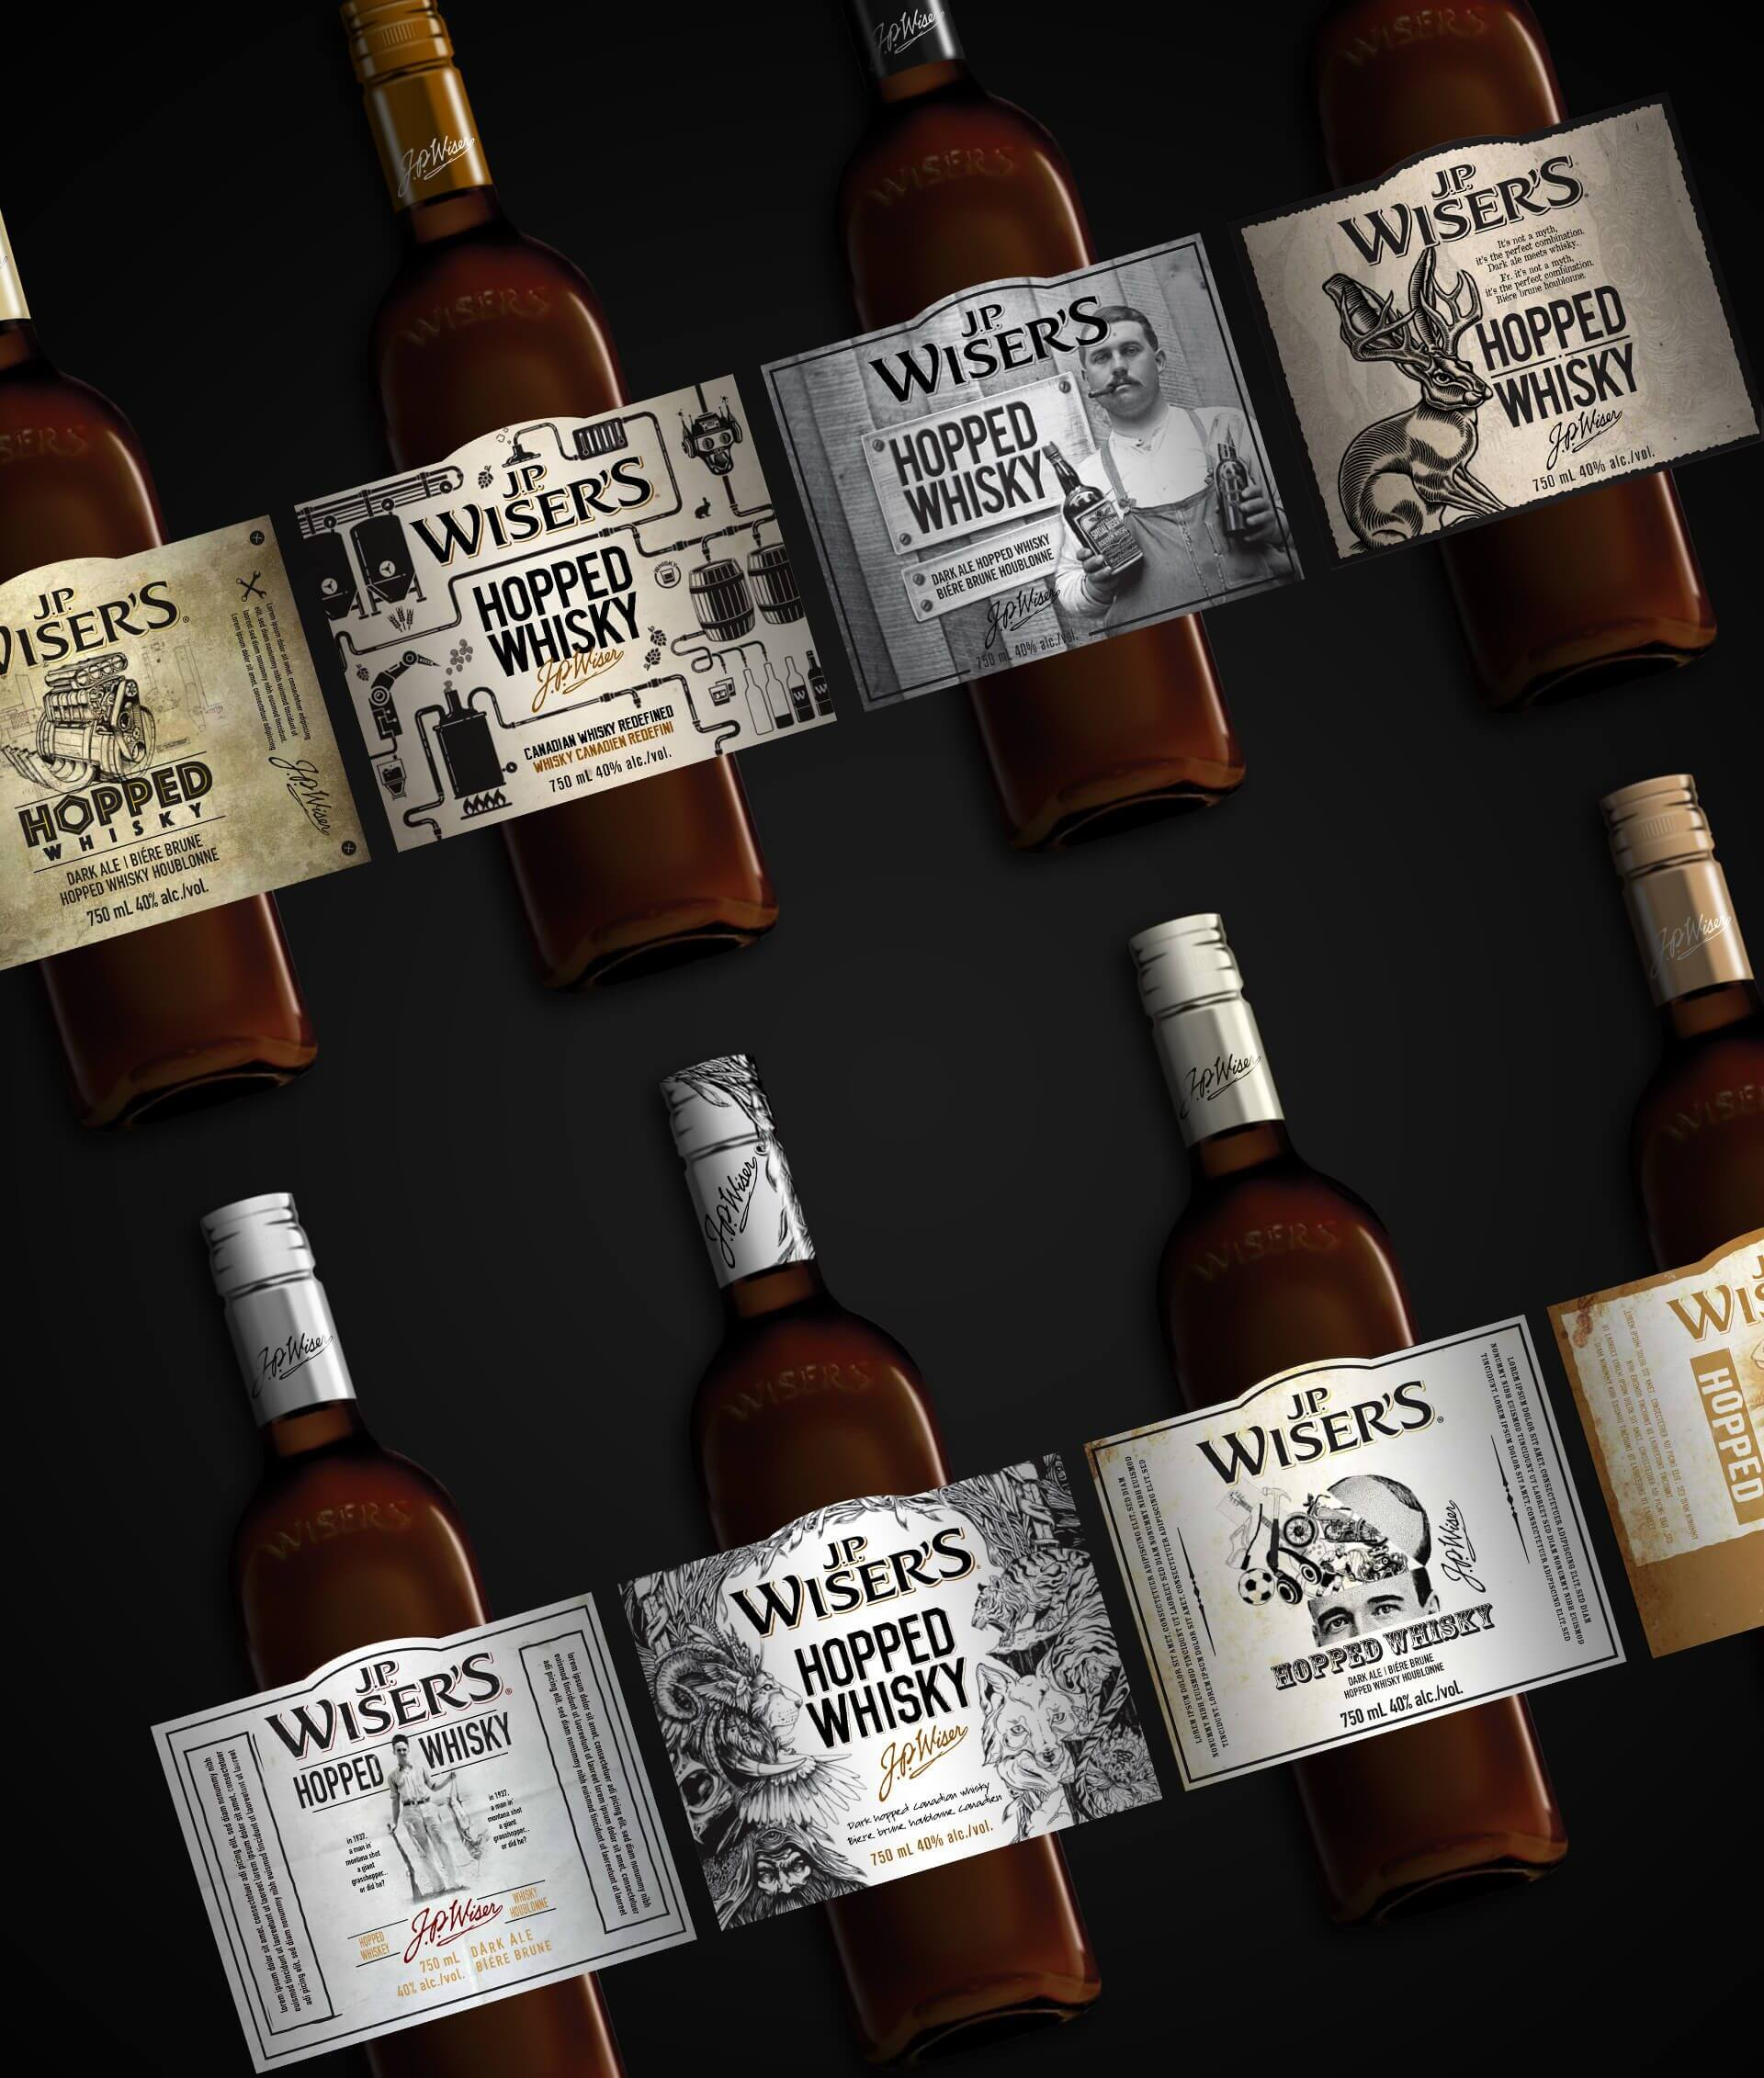 JP Wiser's Hopped Whisky bottle label design concepts